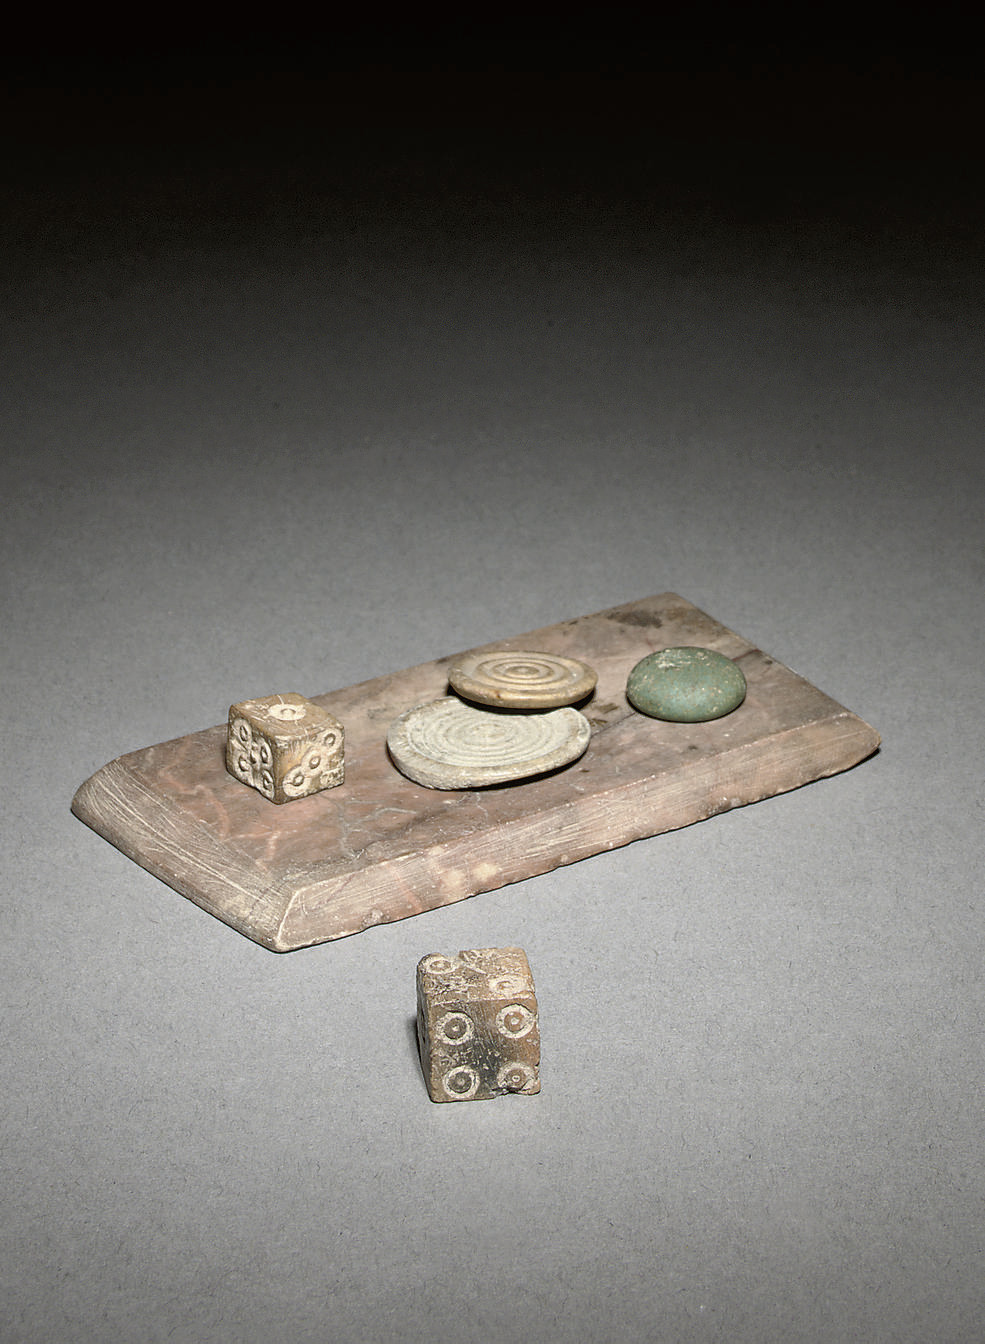 A GROUP OF ROMAN DICE, GAMING